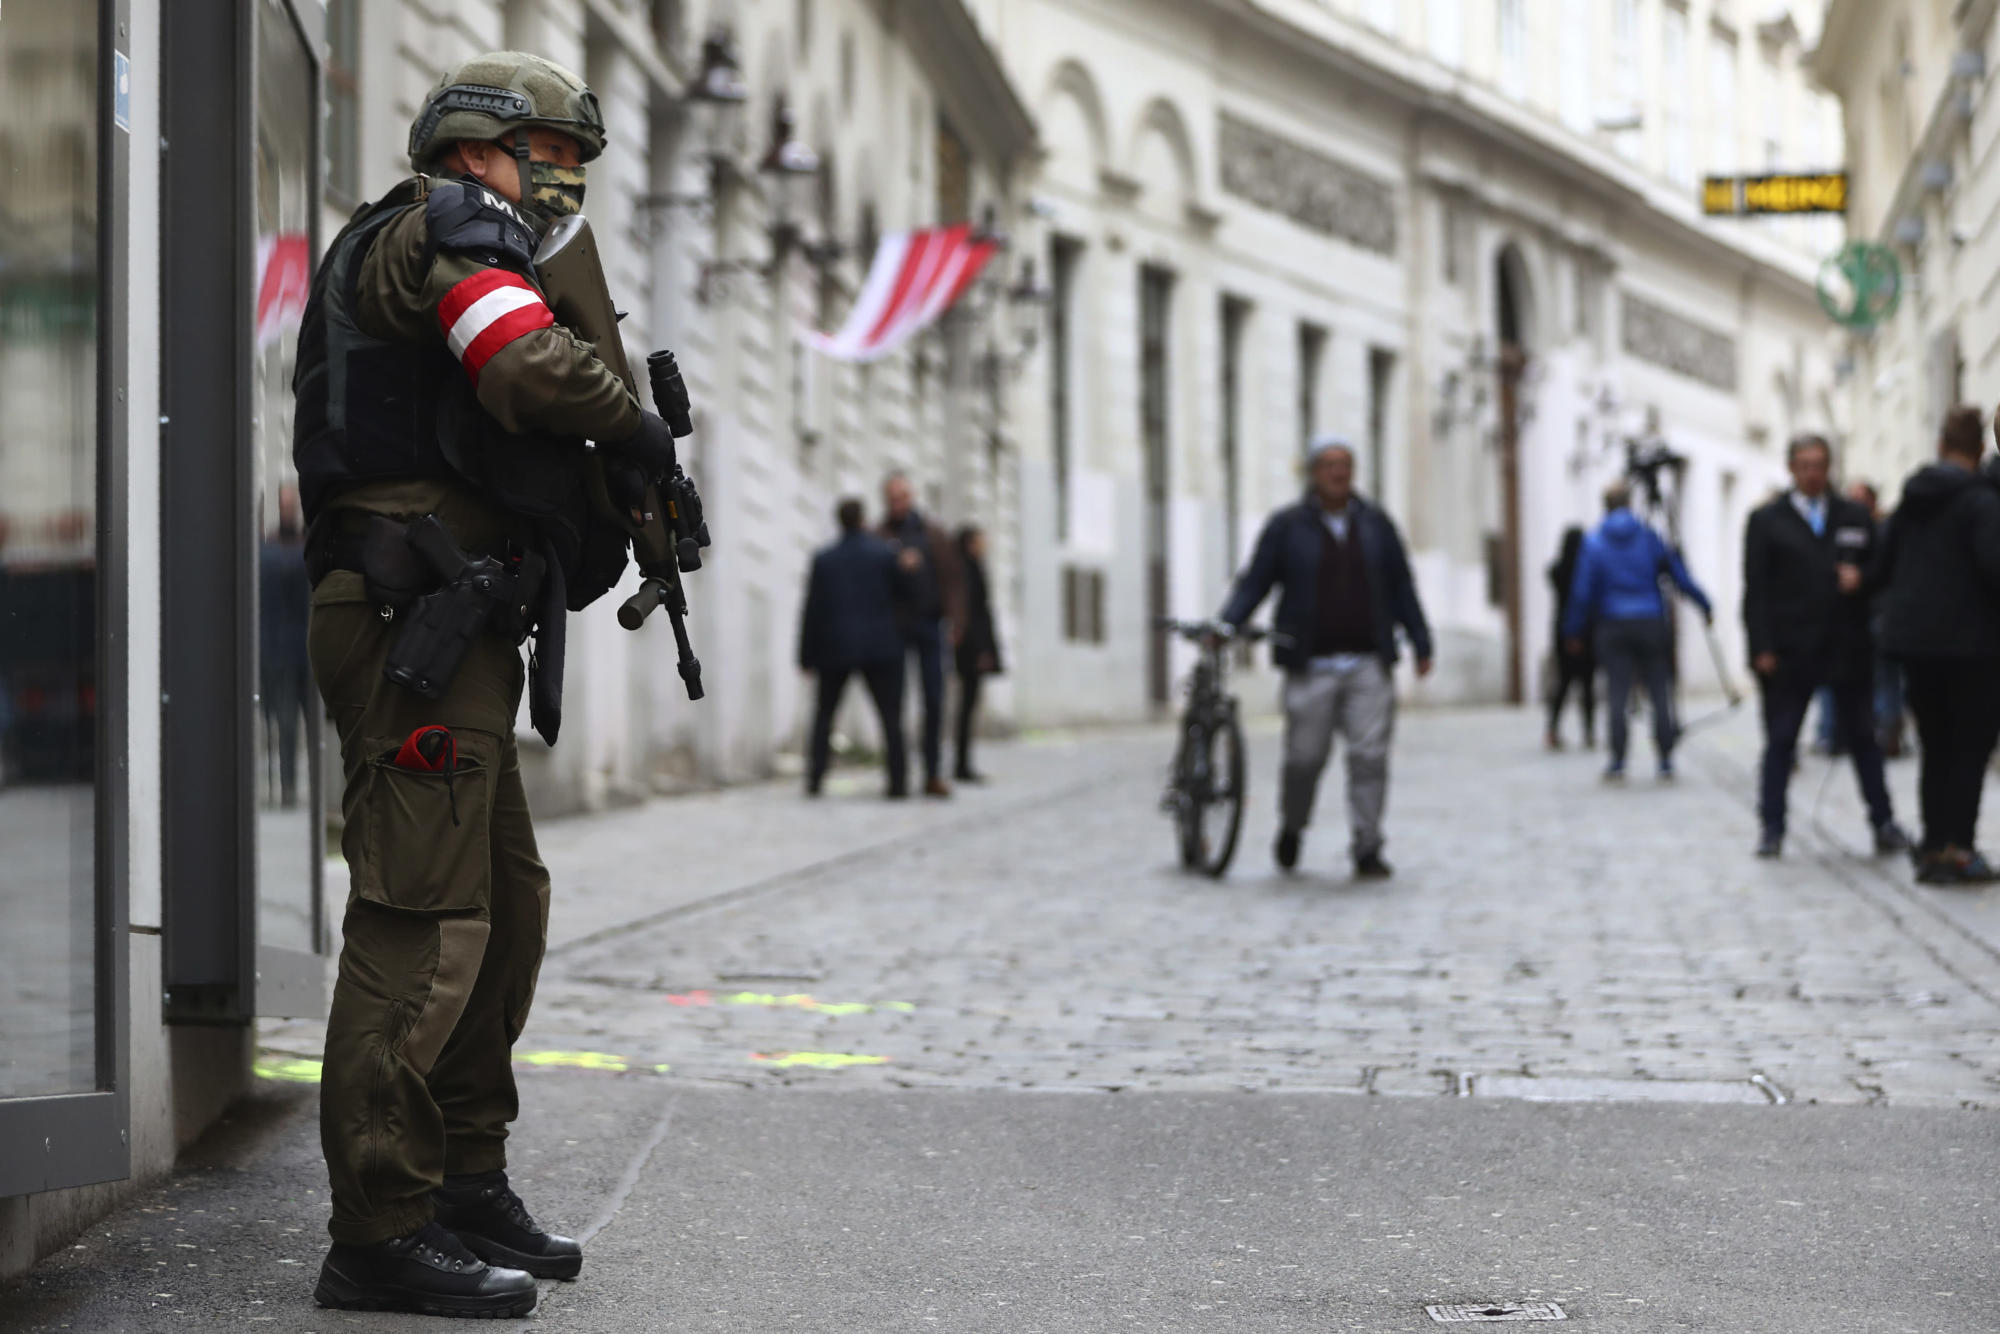 Calm returns to Vienna as police probe gunman who killed 4